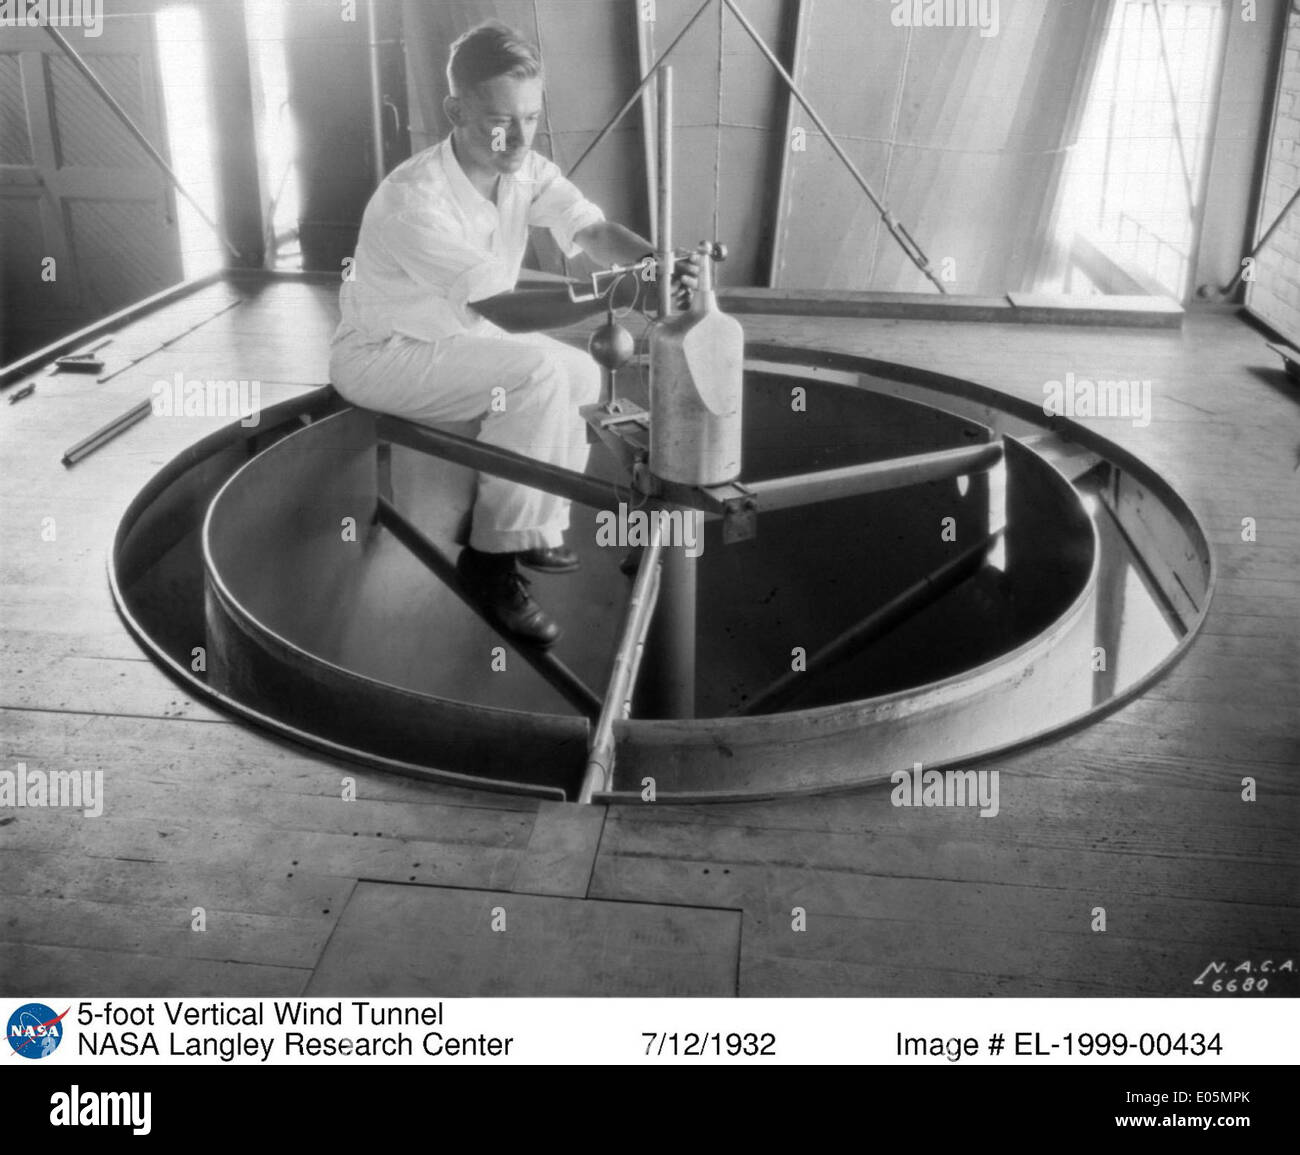 5-foot Vertical Wind Tunnel - Stock Image